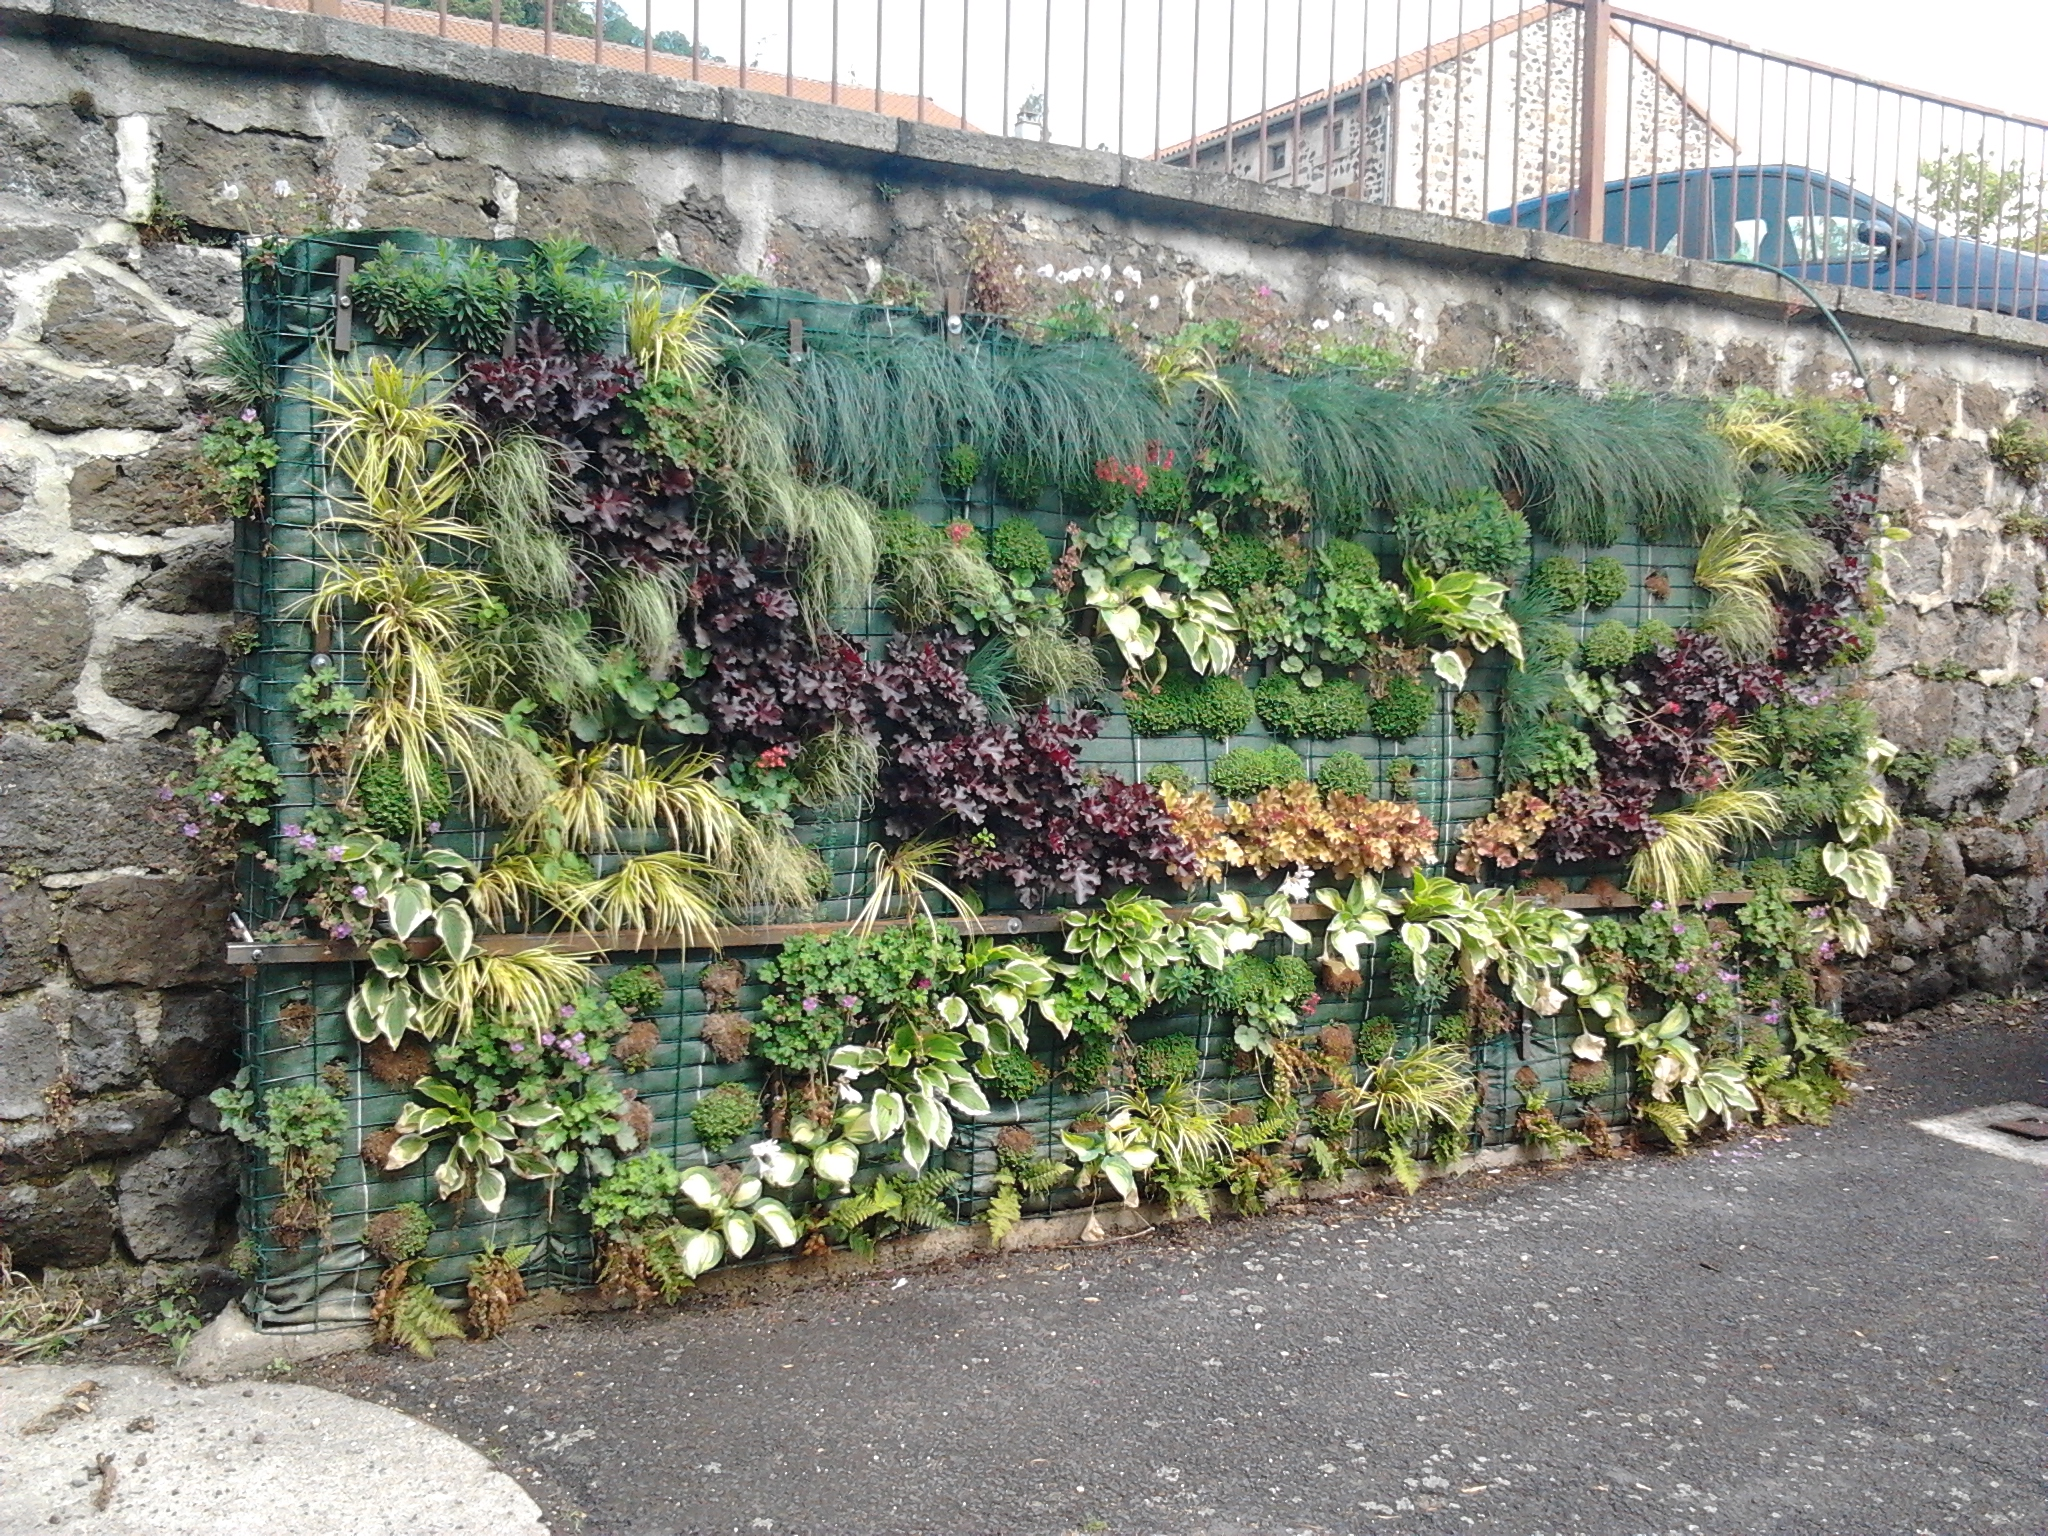 Construction mur vegetal exterieur 28 images un mur v for Mur vegetal exterieur quelles plantes